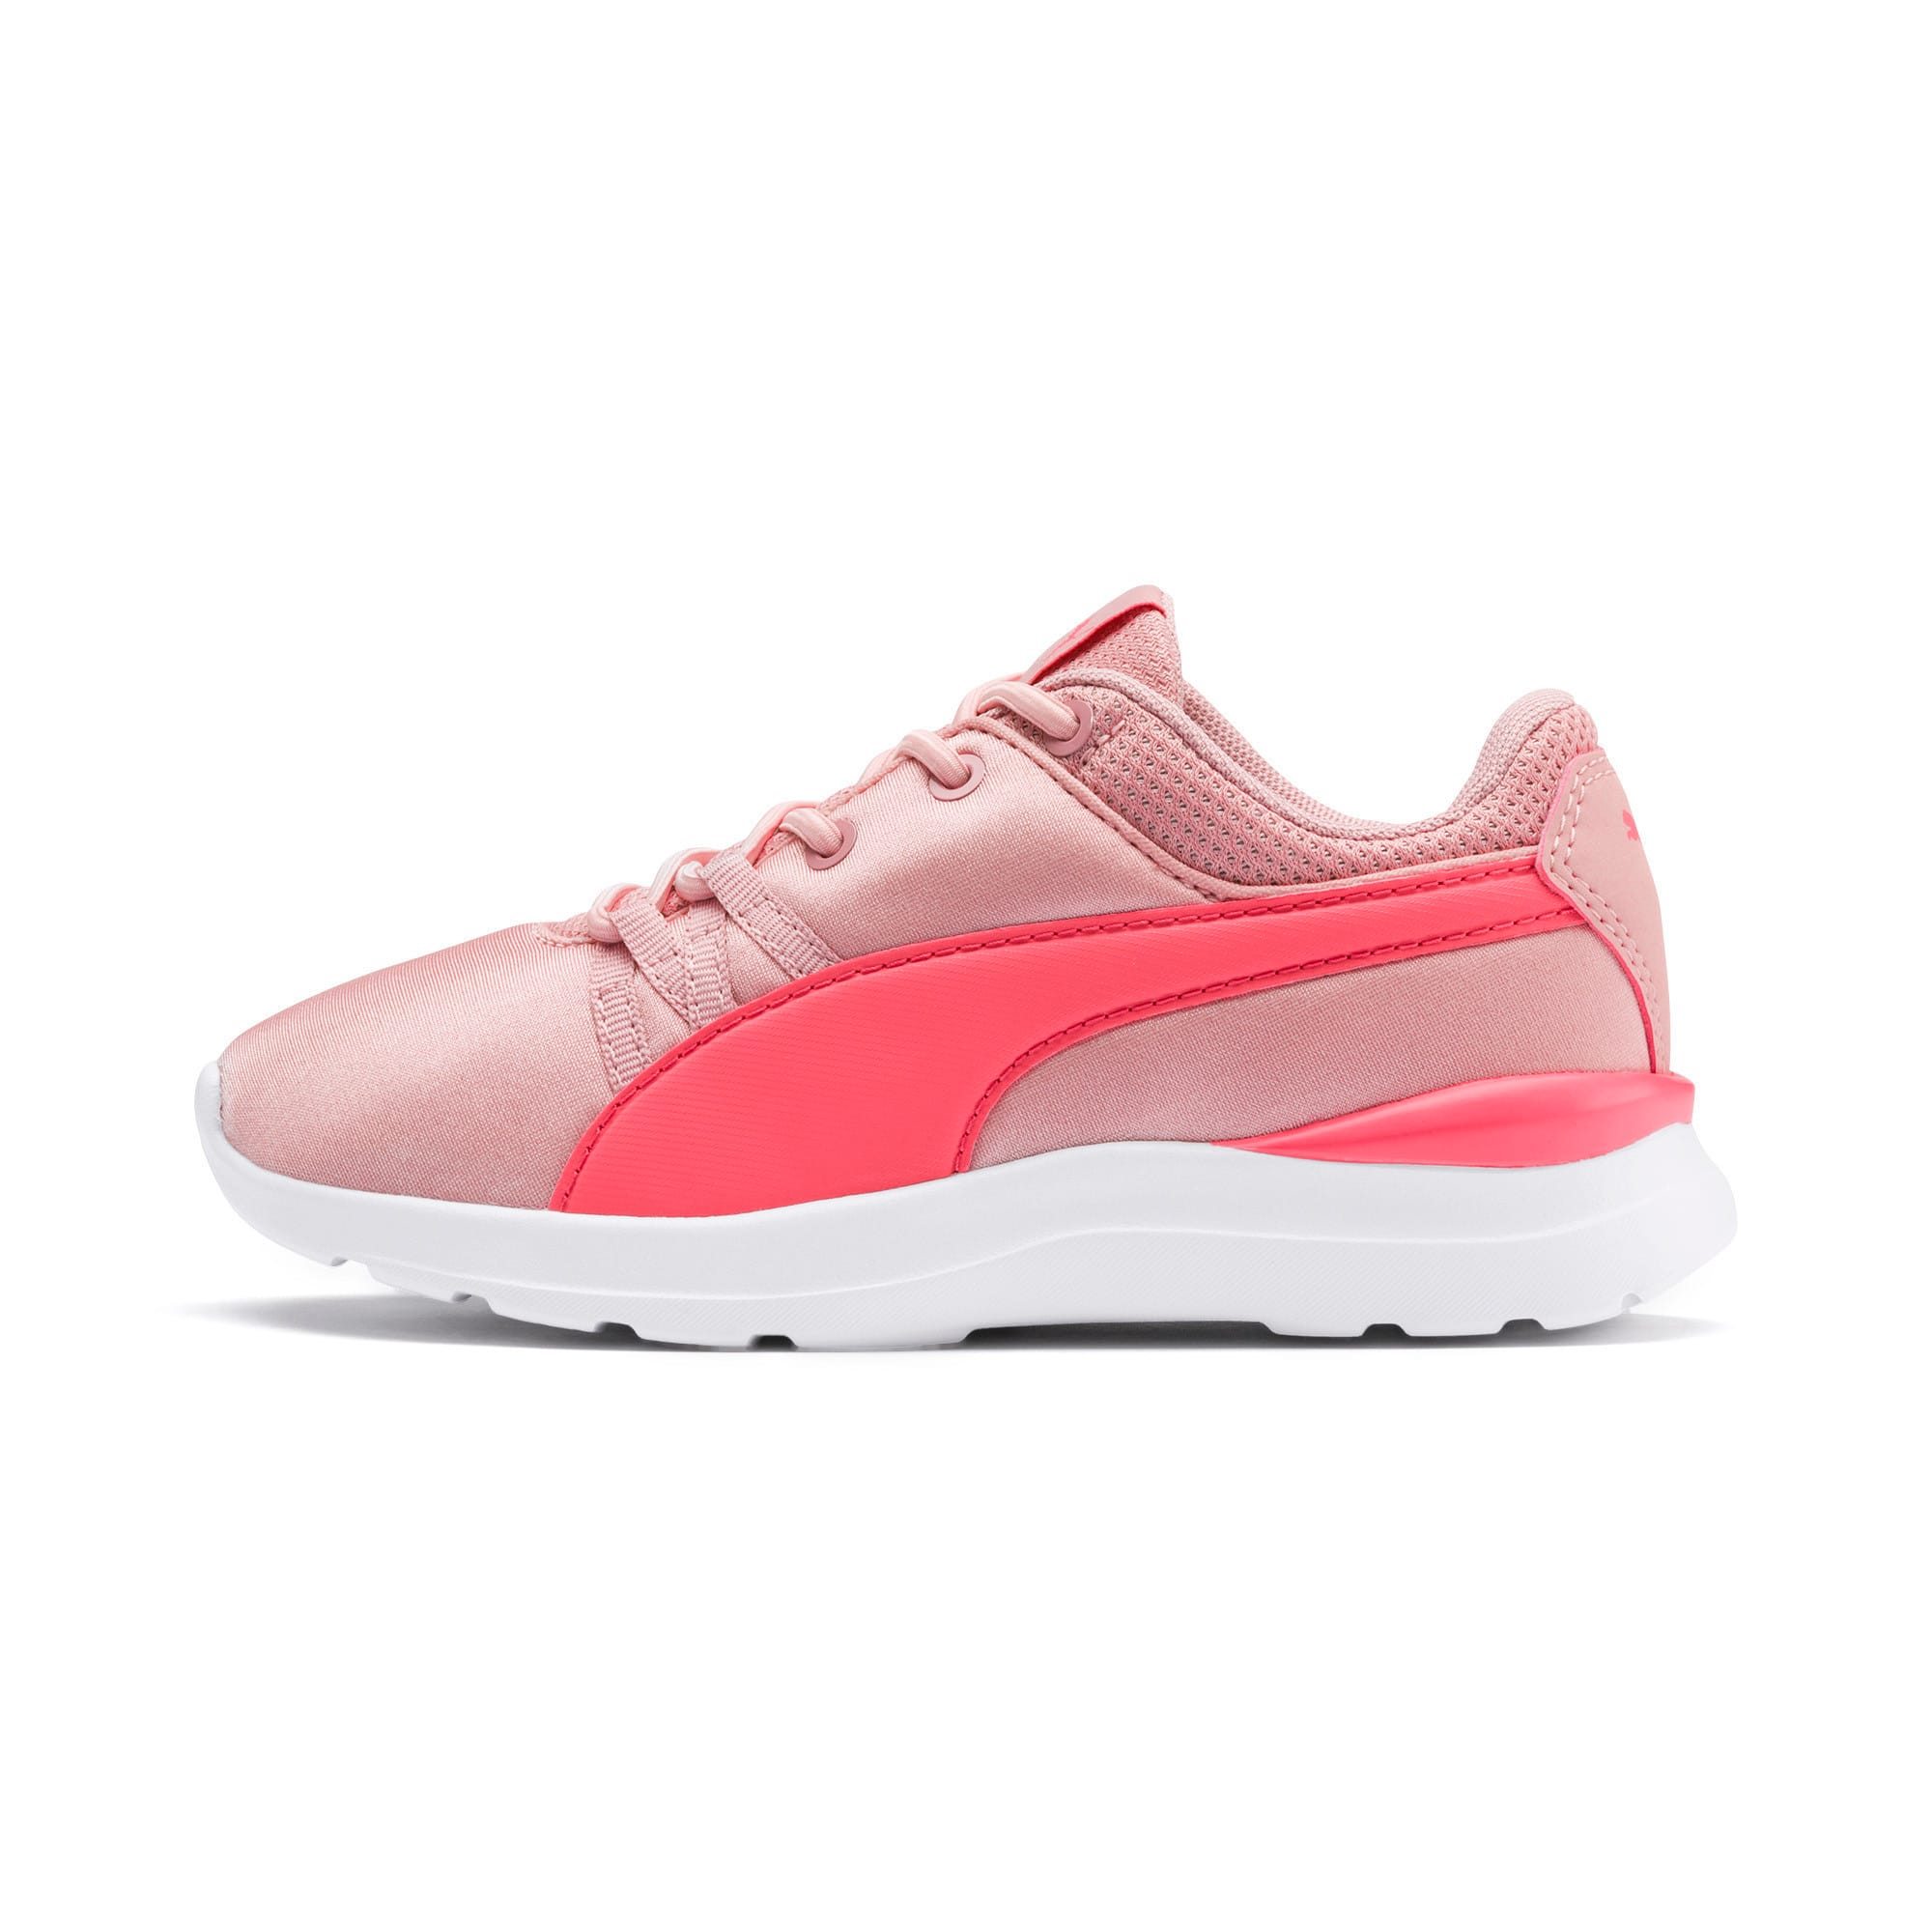 Thumbnail 1 of Adela Girls' Trainers, Bridal Rose-Calypso Coral, medium-IND